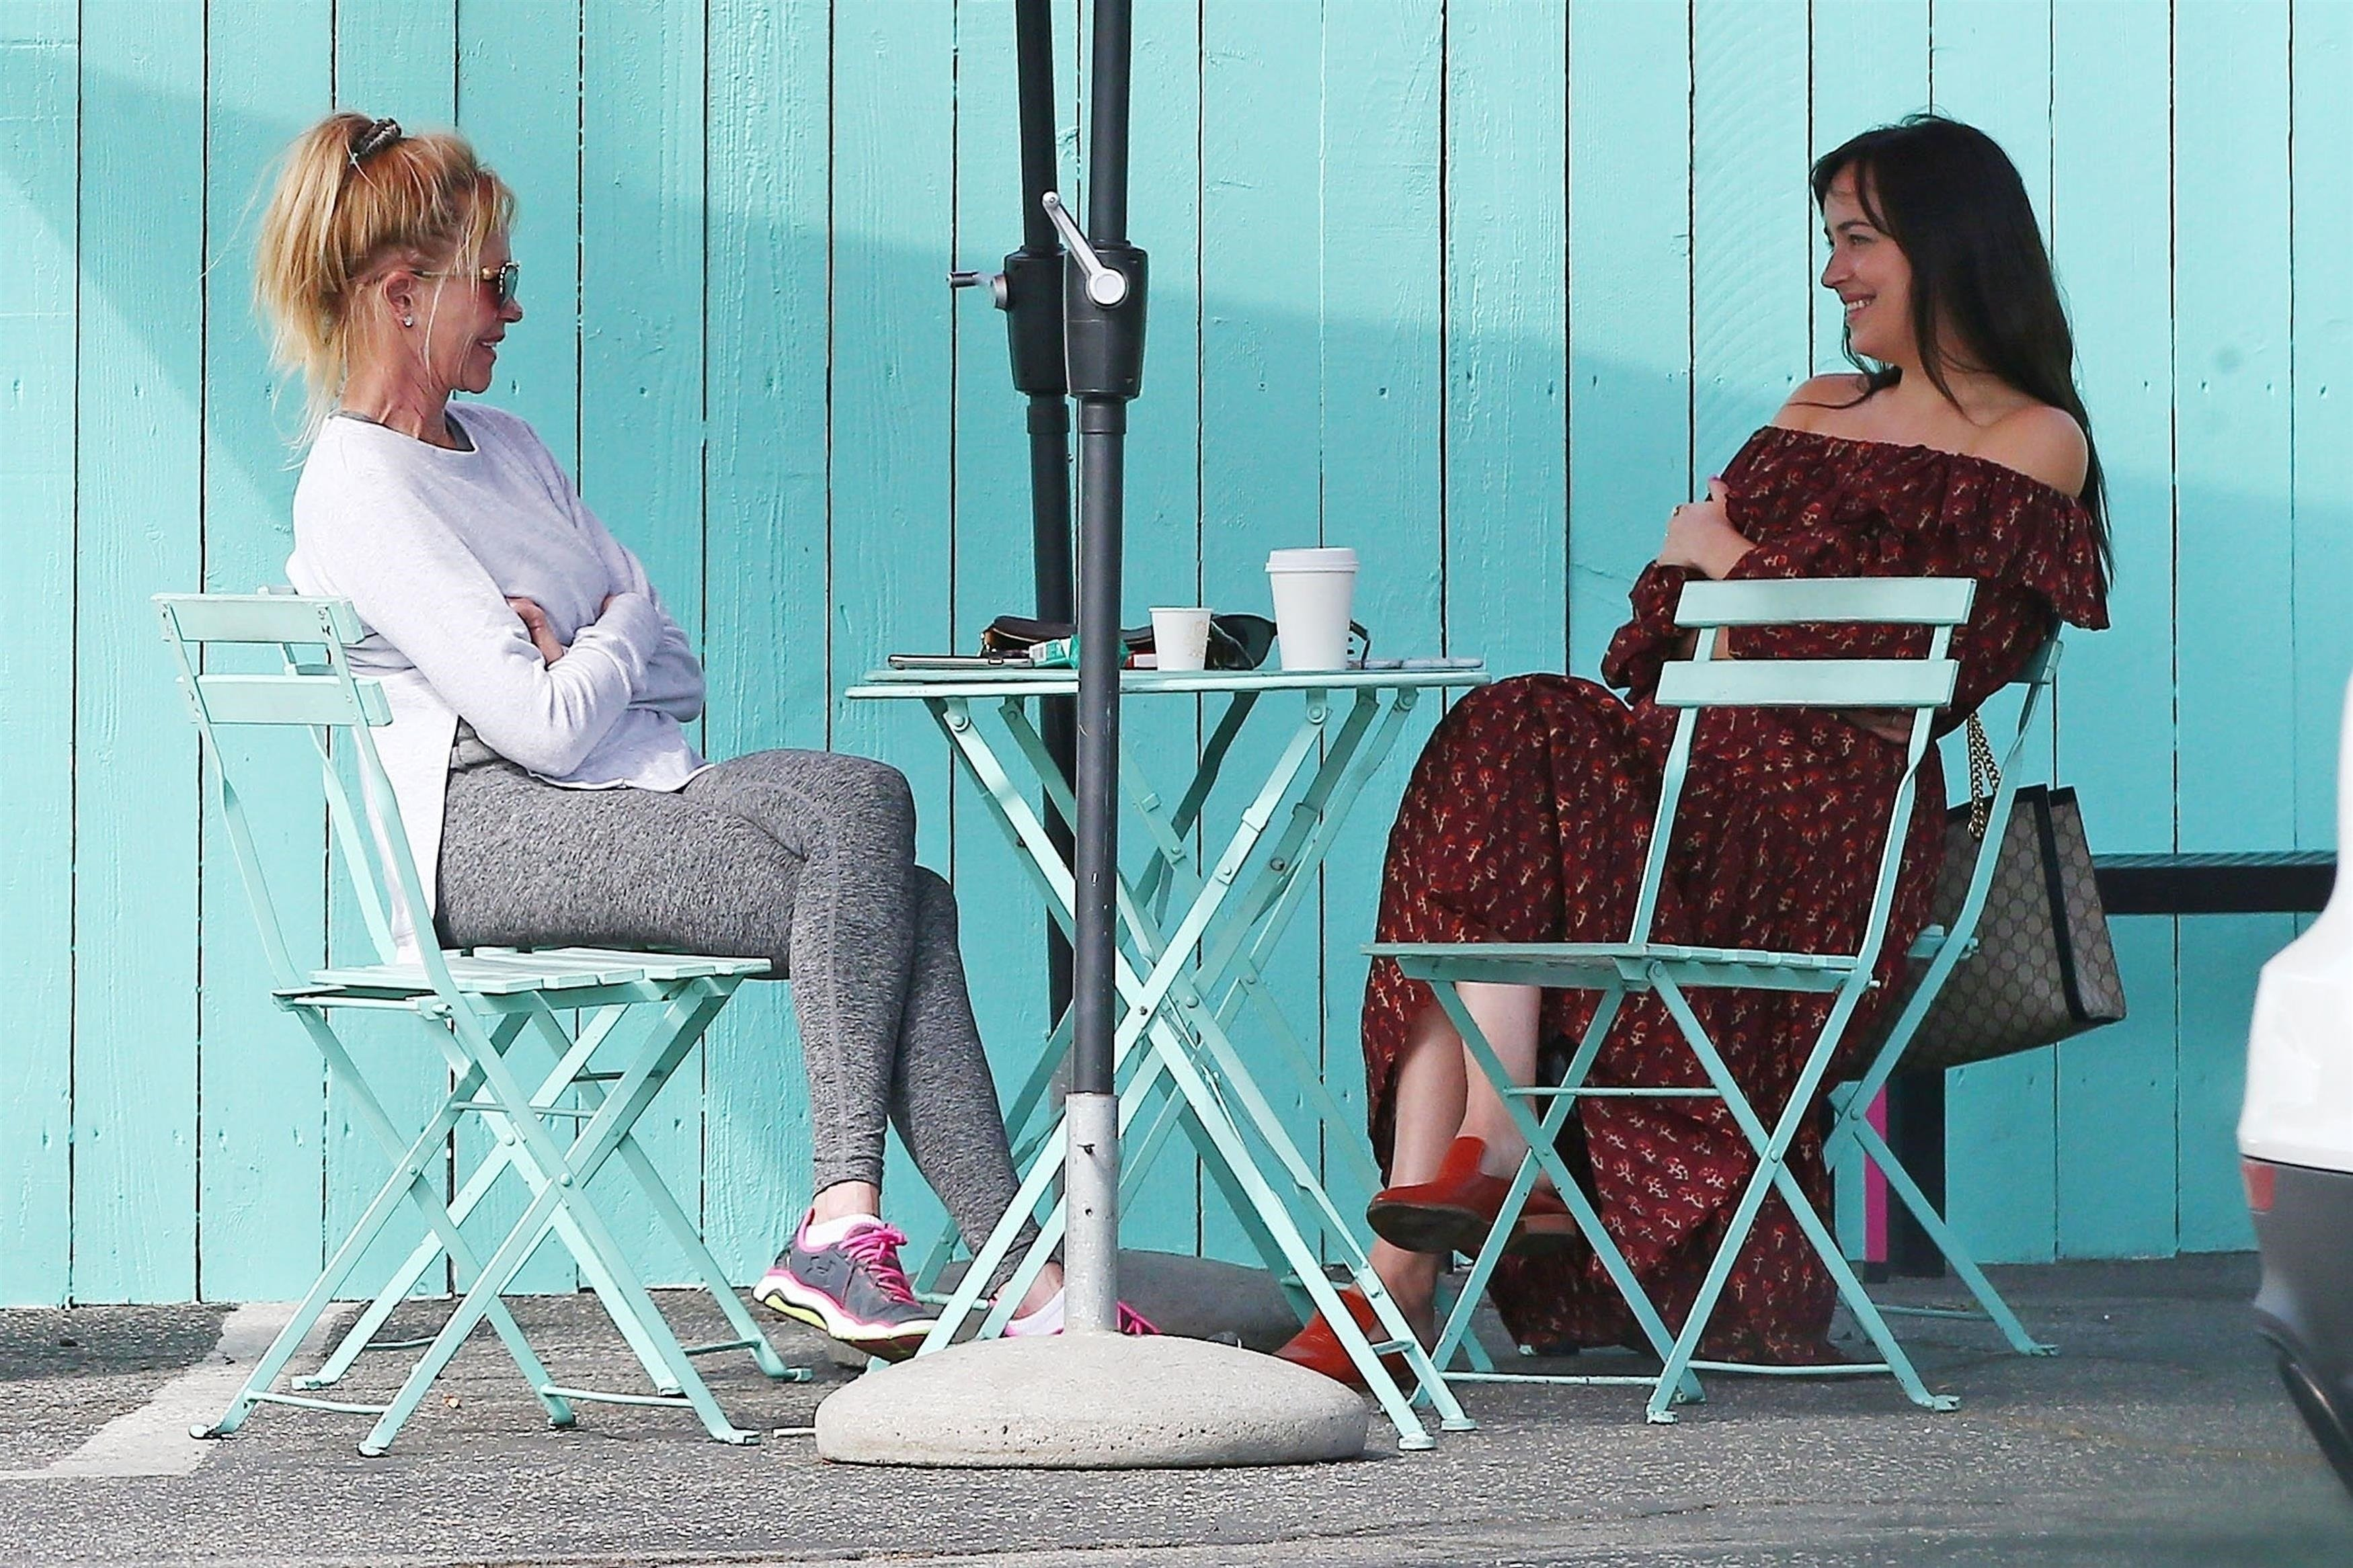 West Hollywood, CA  - *EXCLUSIVE*  - Actress Melanie Griffith and her daughter Dakota Johnson are spotted catching up over coffee in West Hollywood. The pair laughed and chatted before getting up giving each other a hug and kiss and heading on their way.  Pictured: Melanie Griffith, Dakota Johnson  BACKGRID USA 14 SEPTEMBER 2017, Image: 349403151, License: Rights-managed, Restrictions: , Model Release: no, Credit line: Profimedia, AKM-GSI